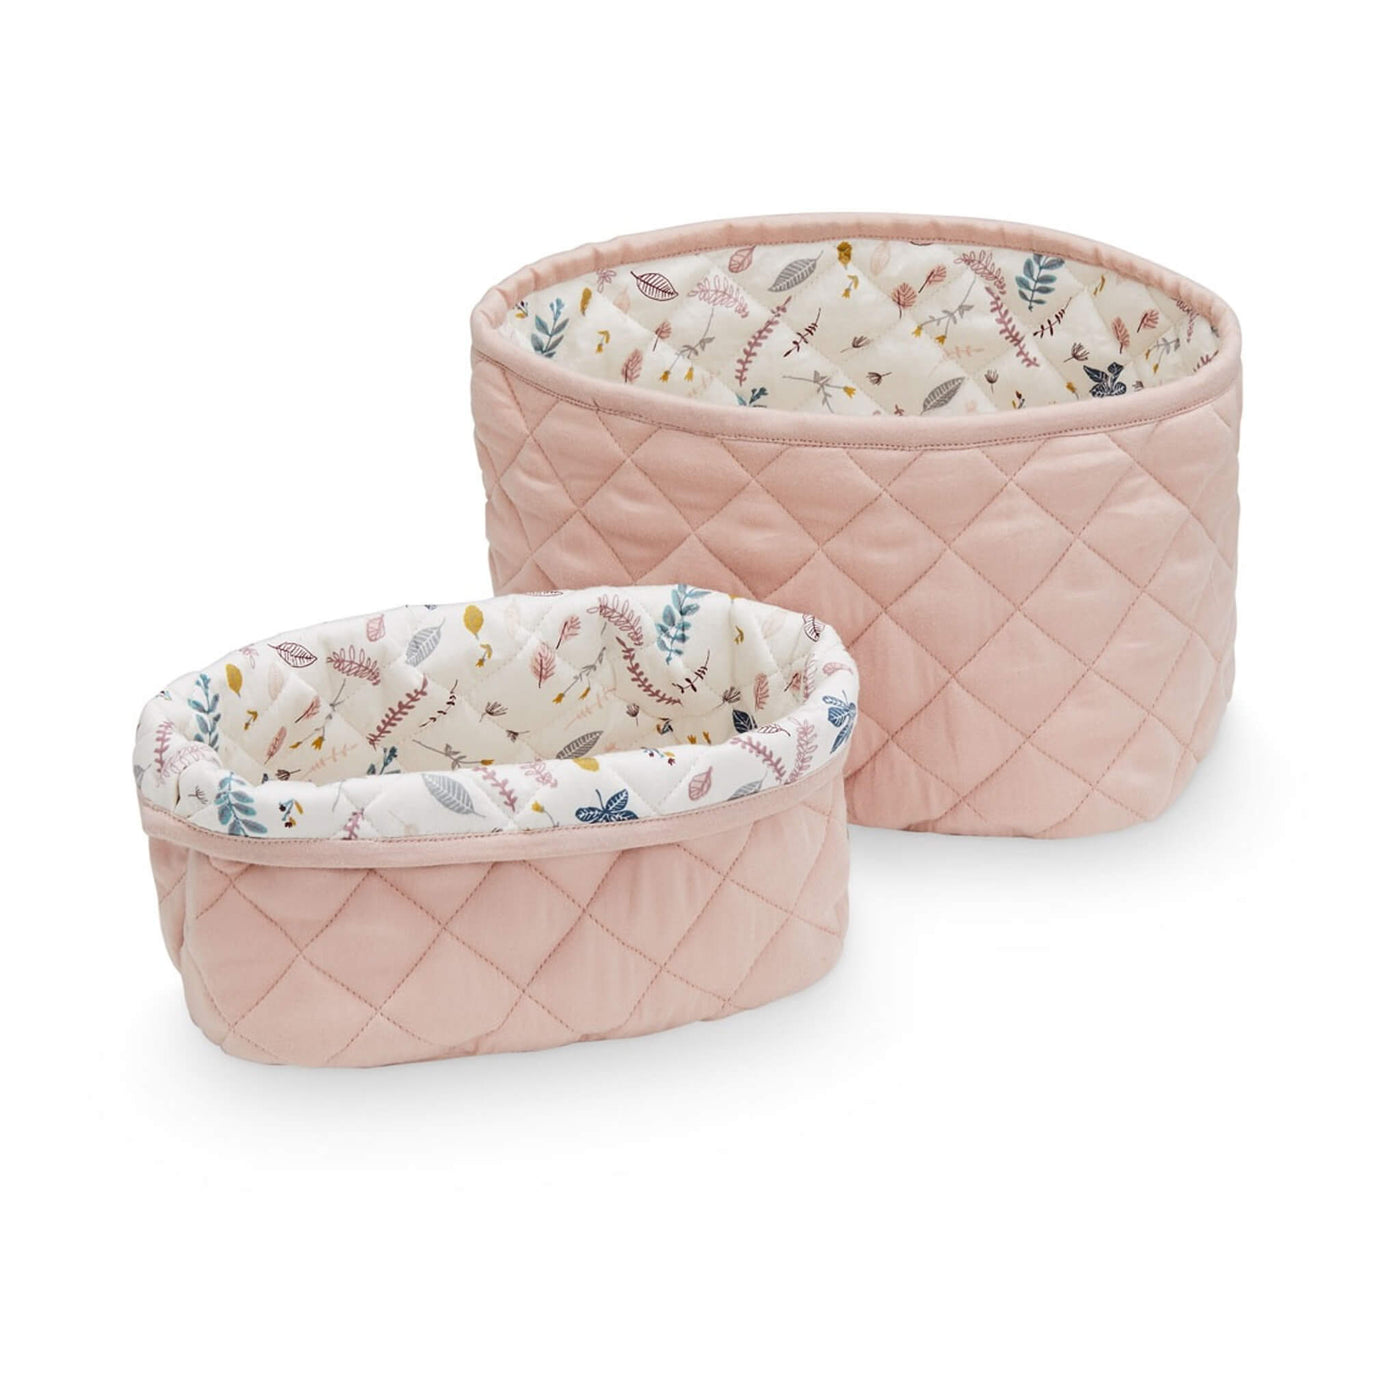 Quilted Storage Basket - Set of 2 - Blossom Pink